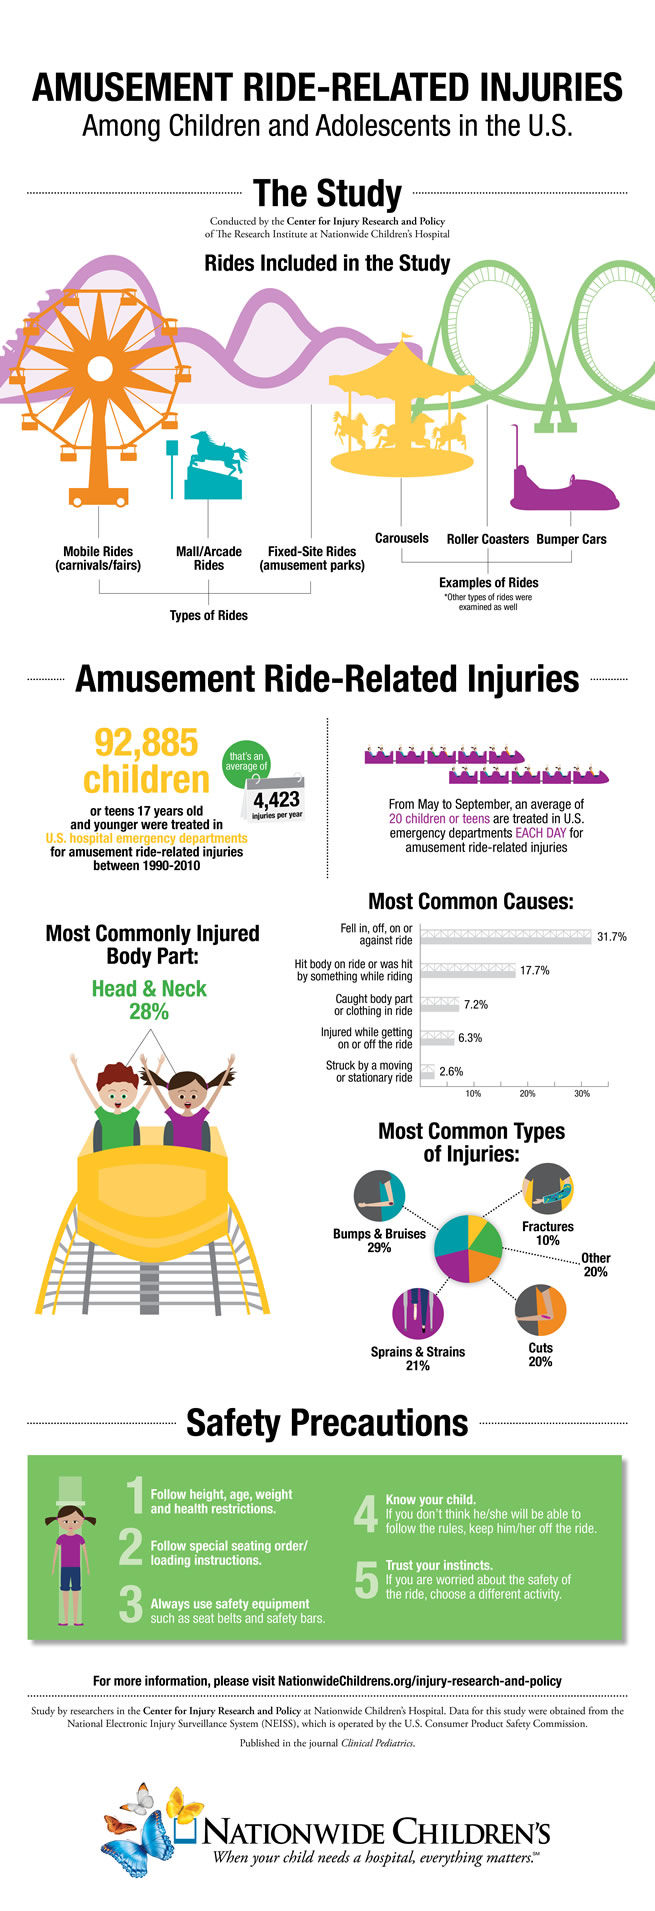 Nationwide Children's Hospital Amusement Ride Injuries Infographic